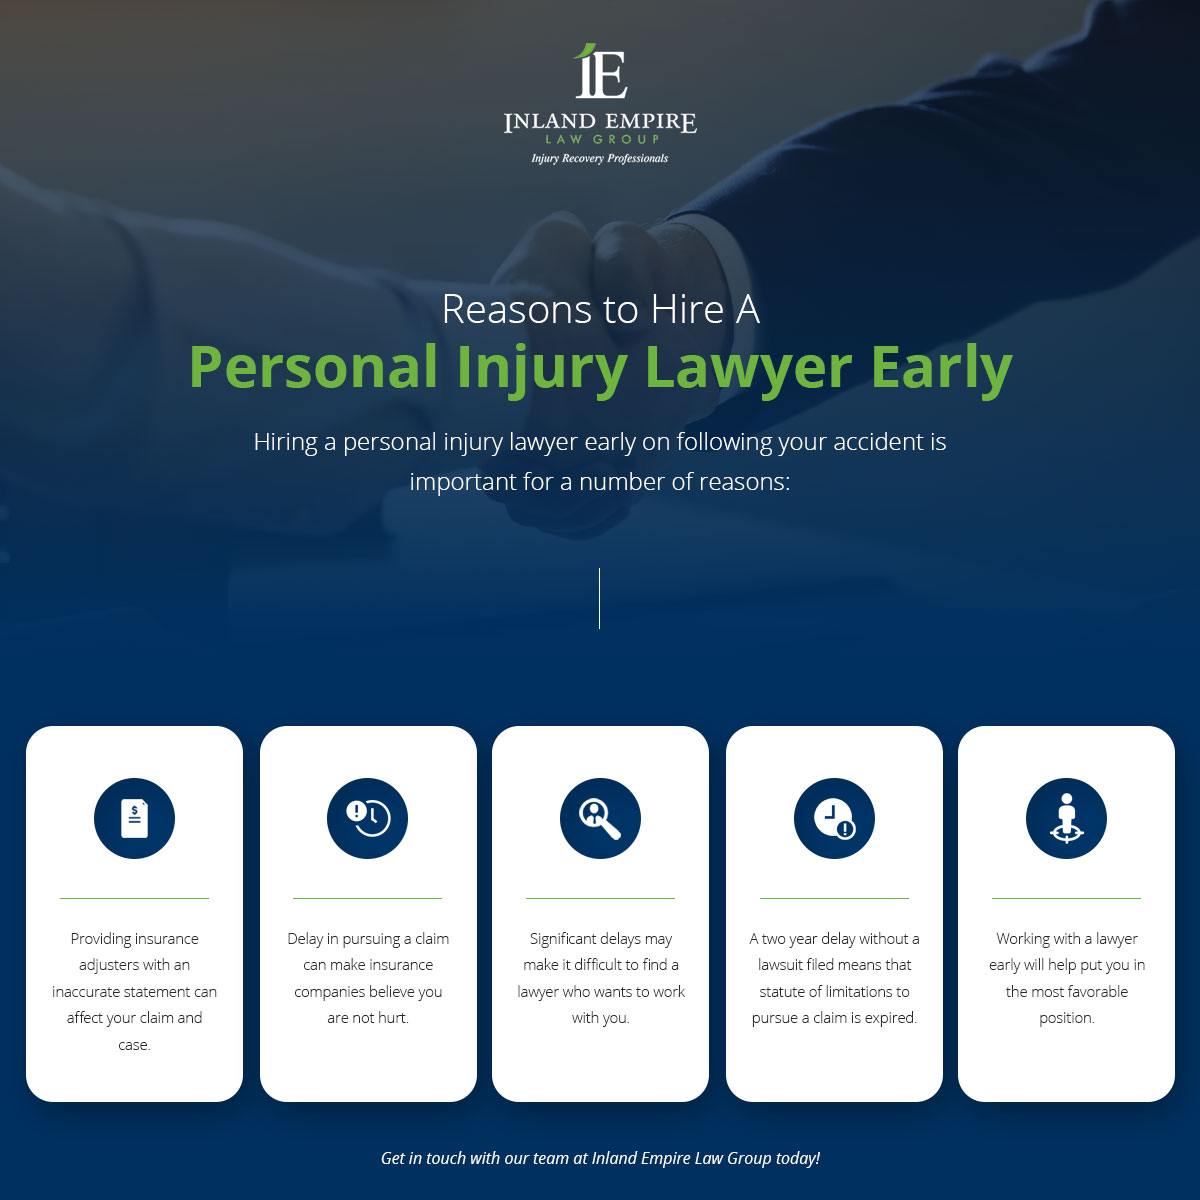 Reasons to hire a personal injury lawyer early